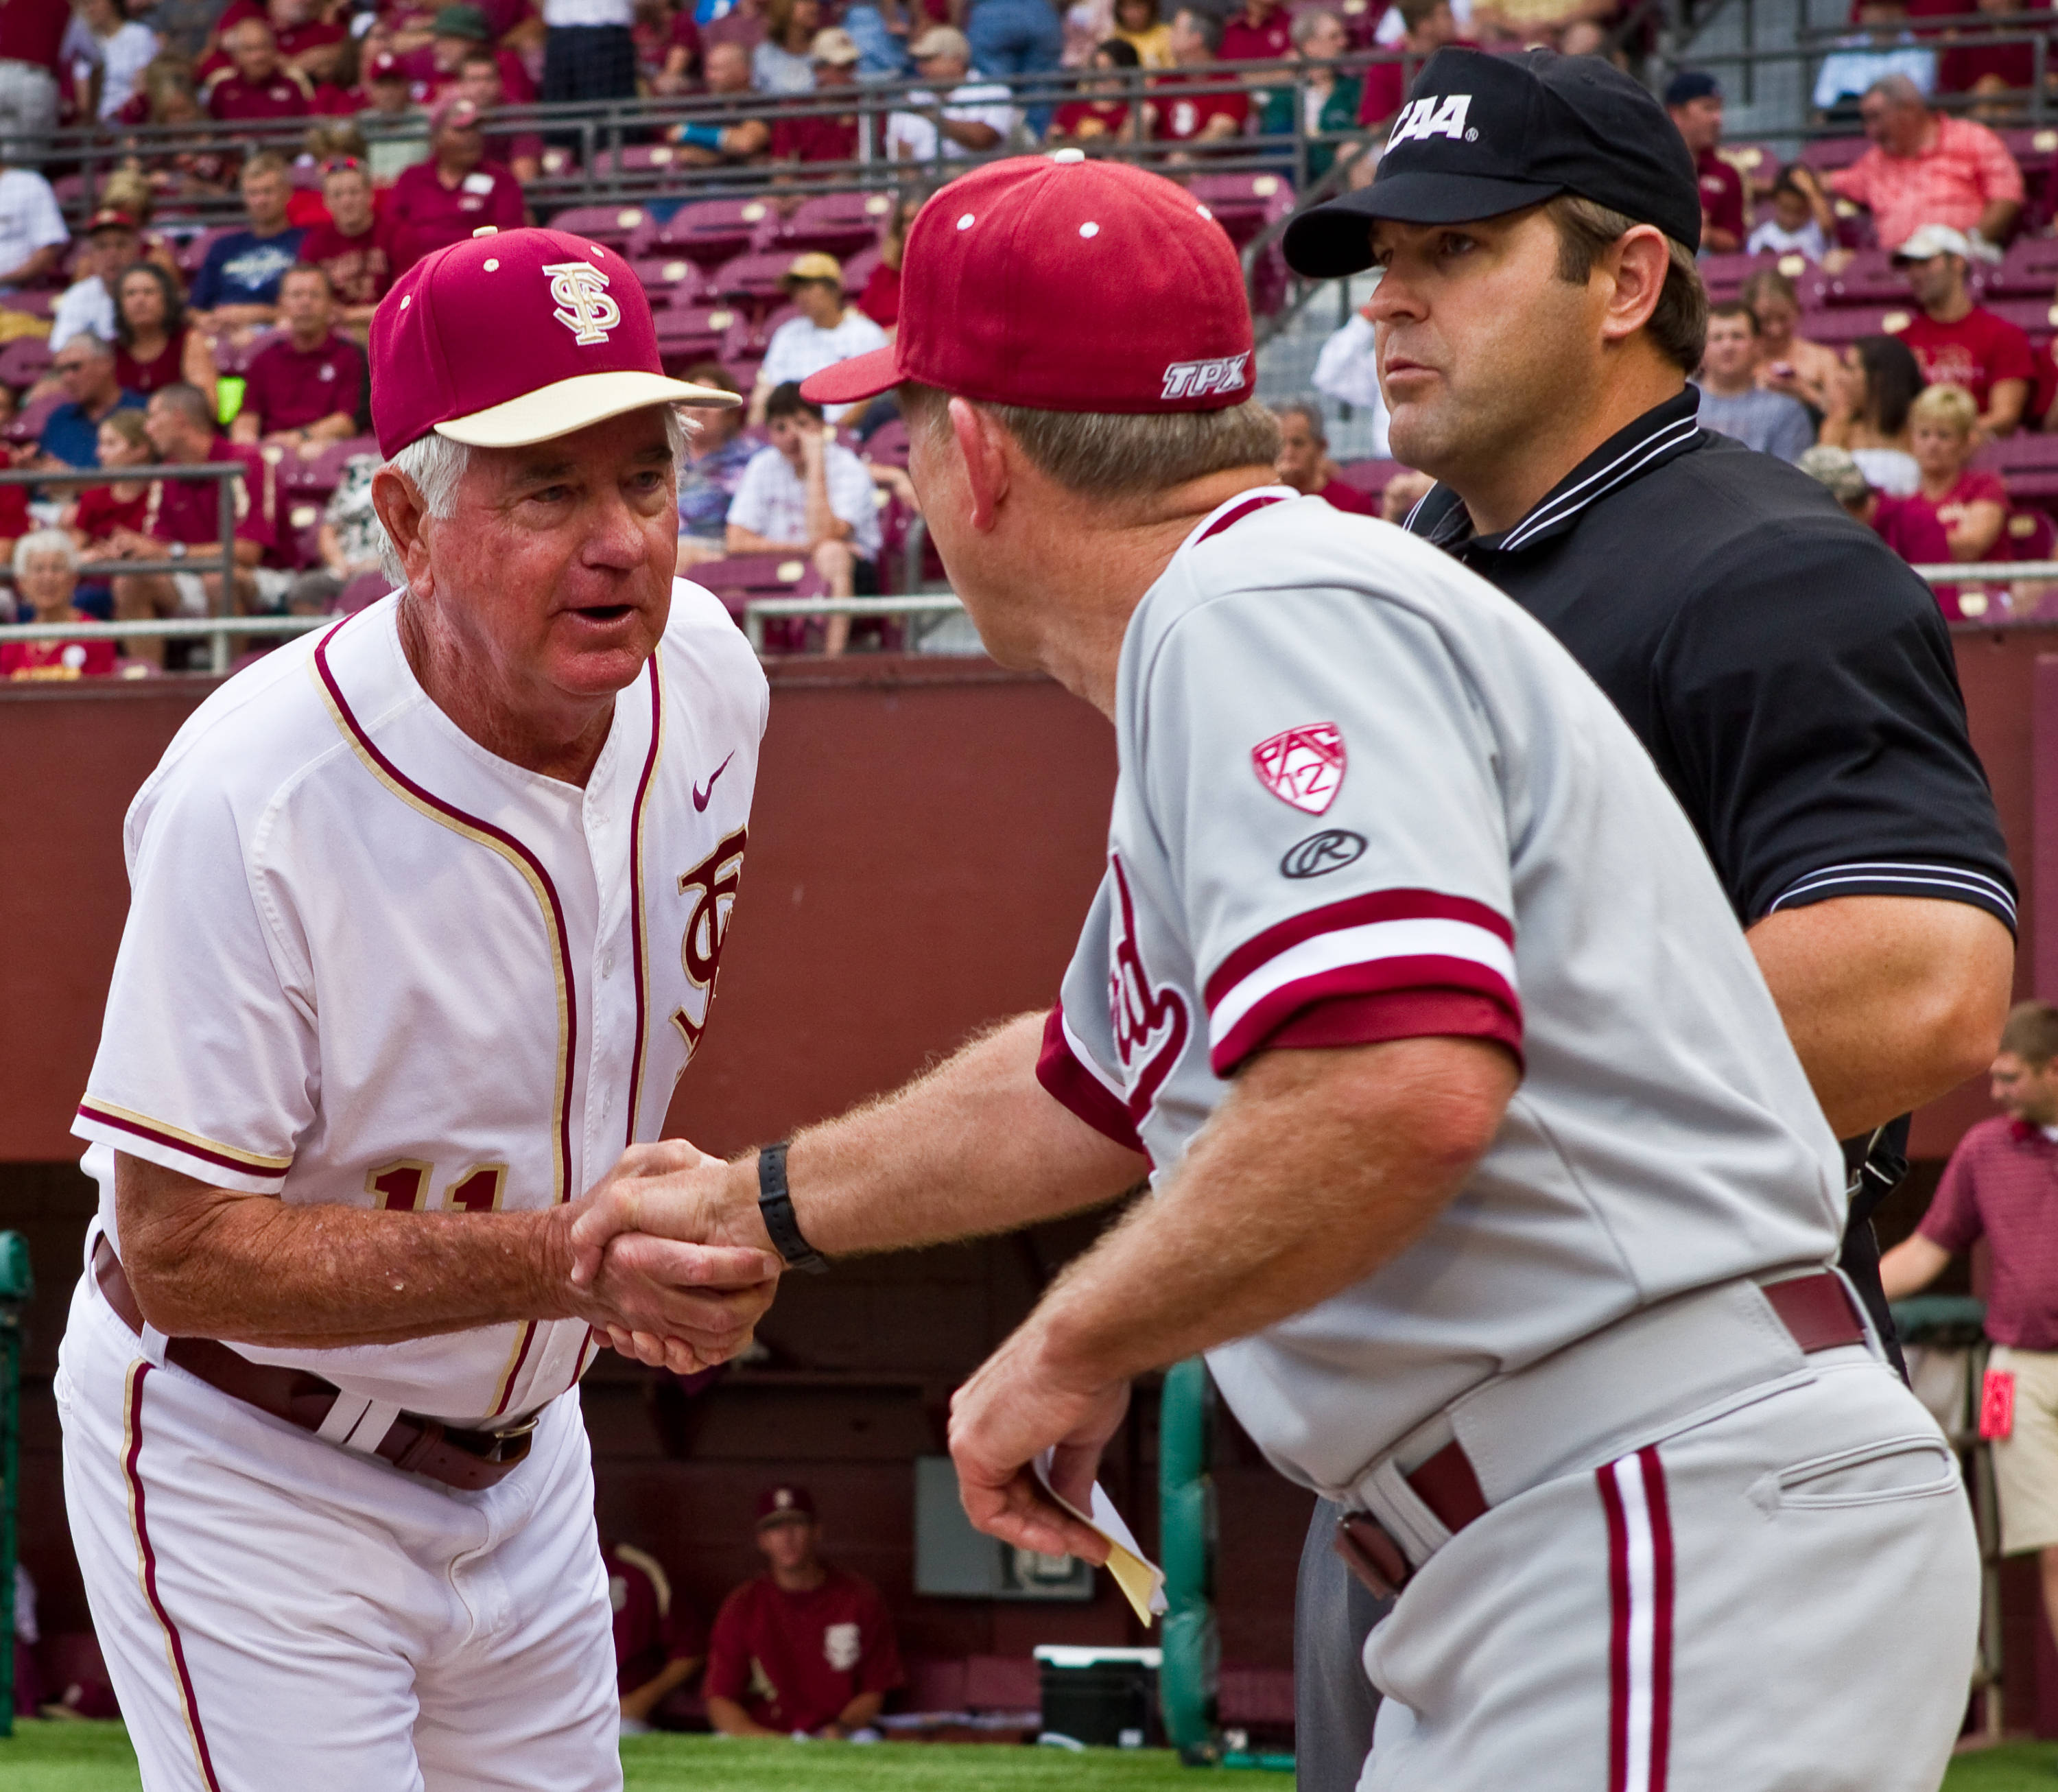 Mike Martin and Mark Marquess shake hands prior to the start of game one.